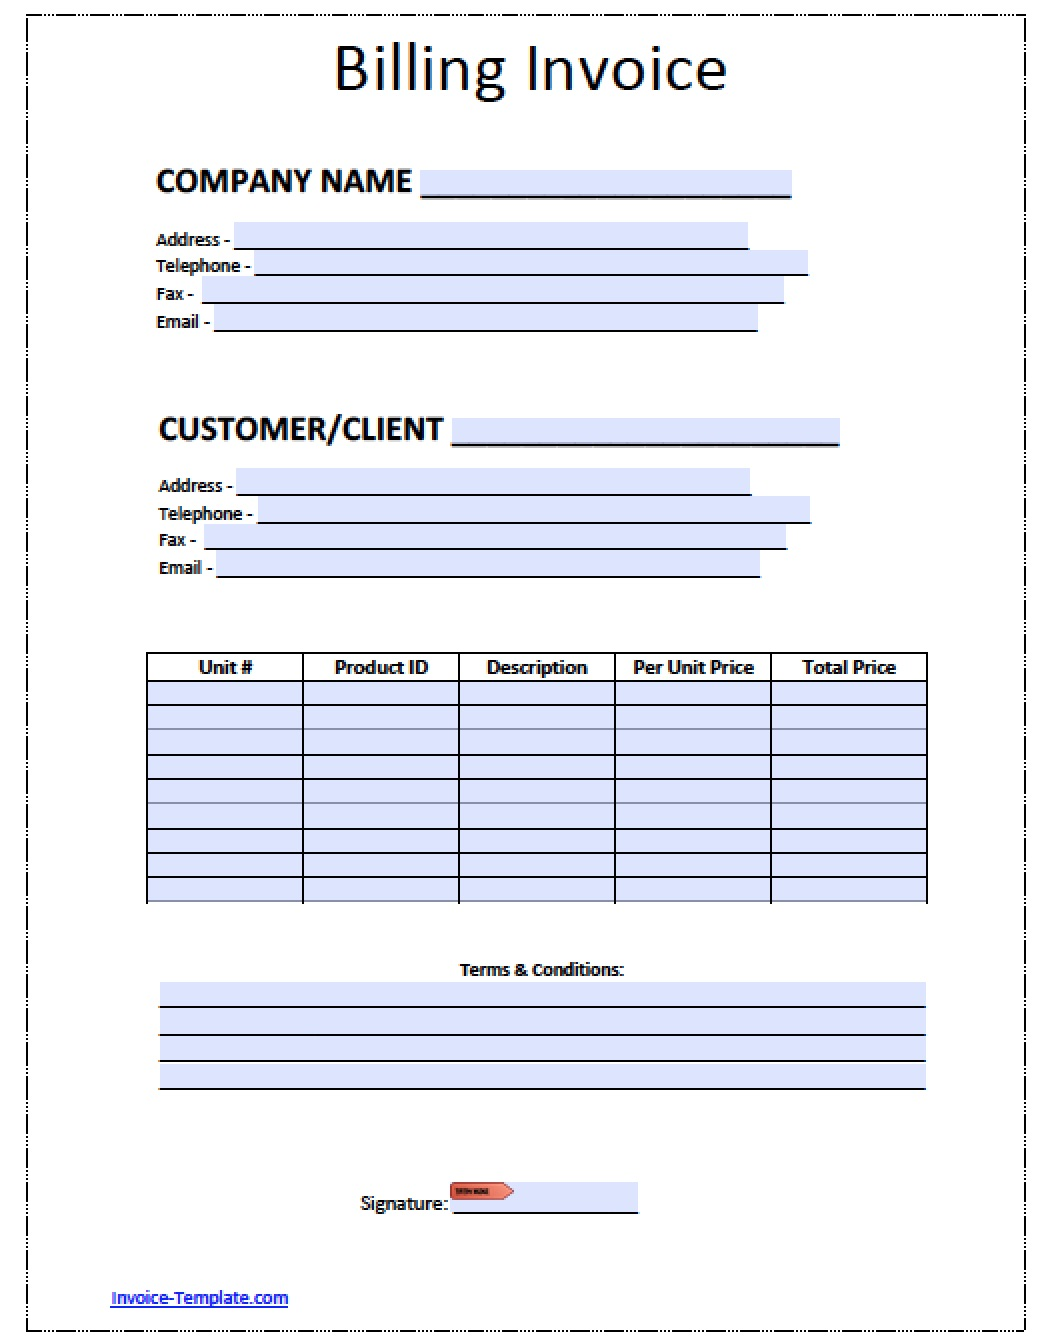 Billing Invoice Template Word Pdf  Invoices Templates Word